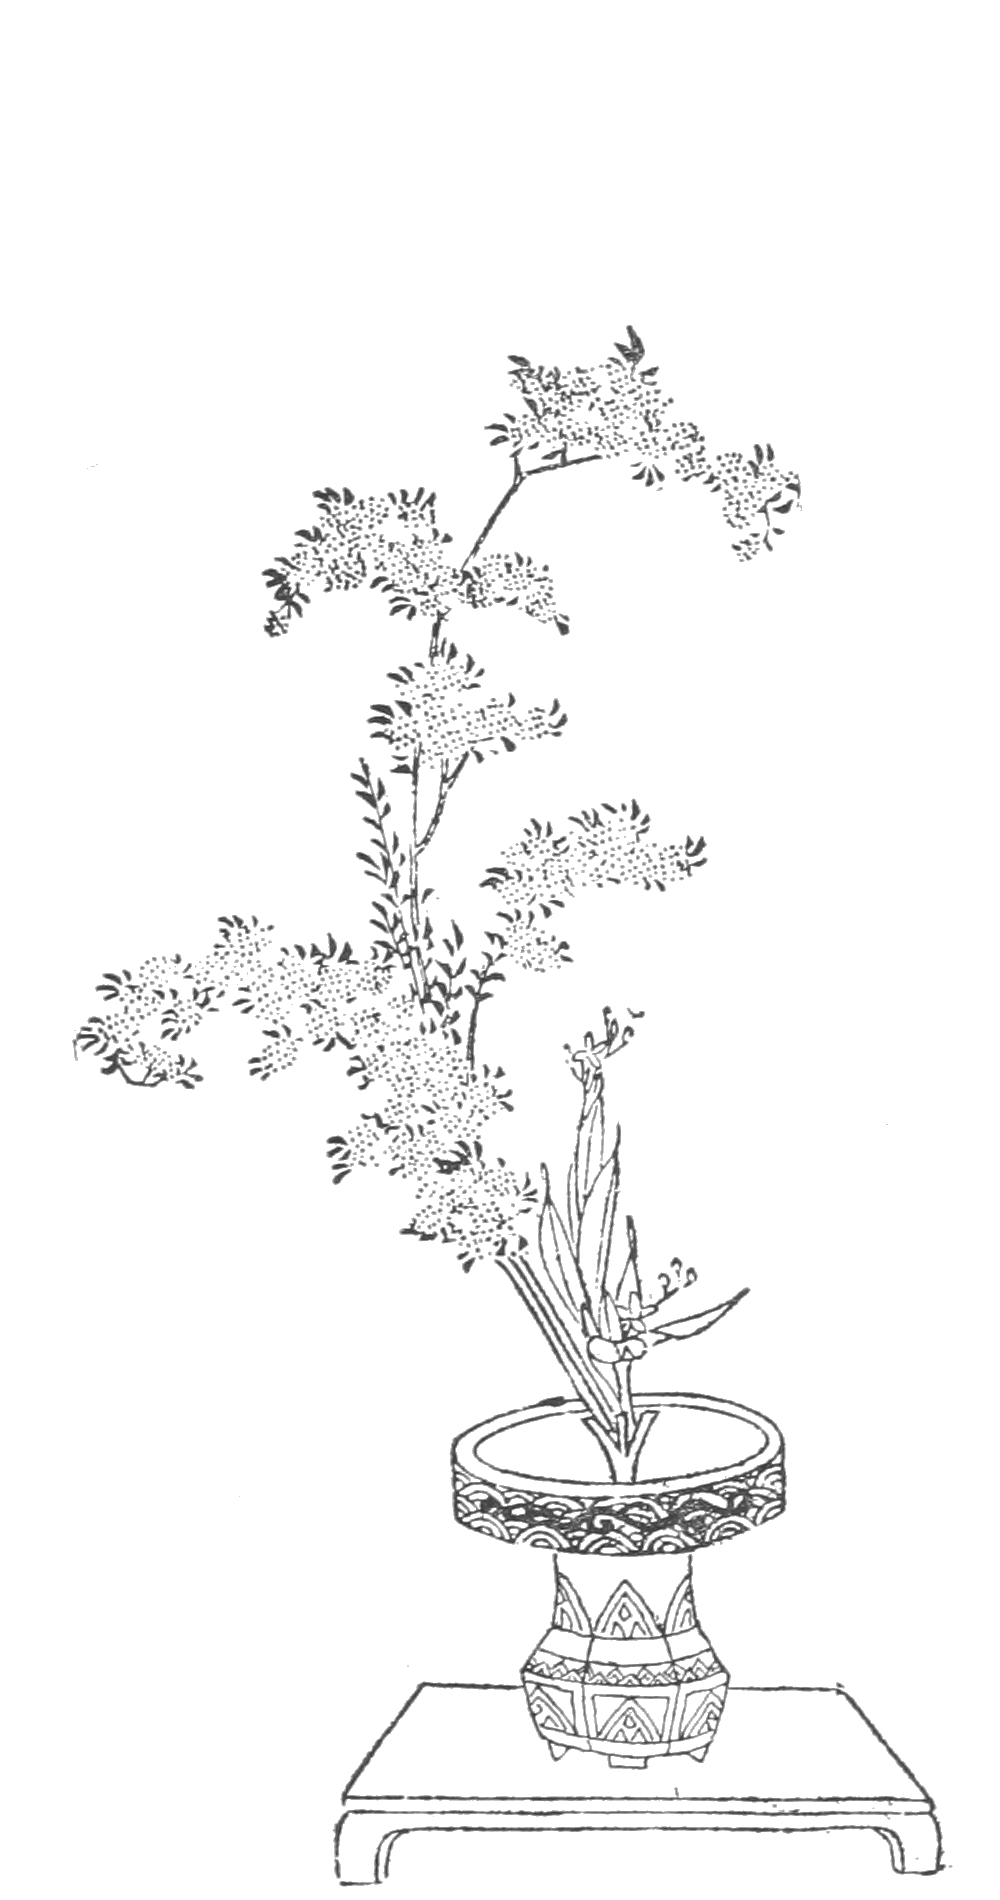 Japanese Flower Drawing Styles At Getdrawings Free For